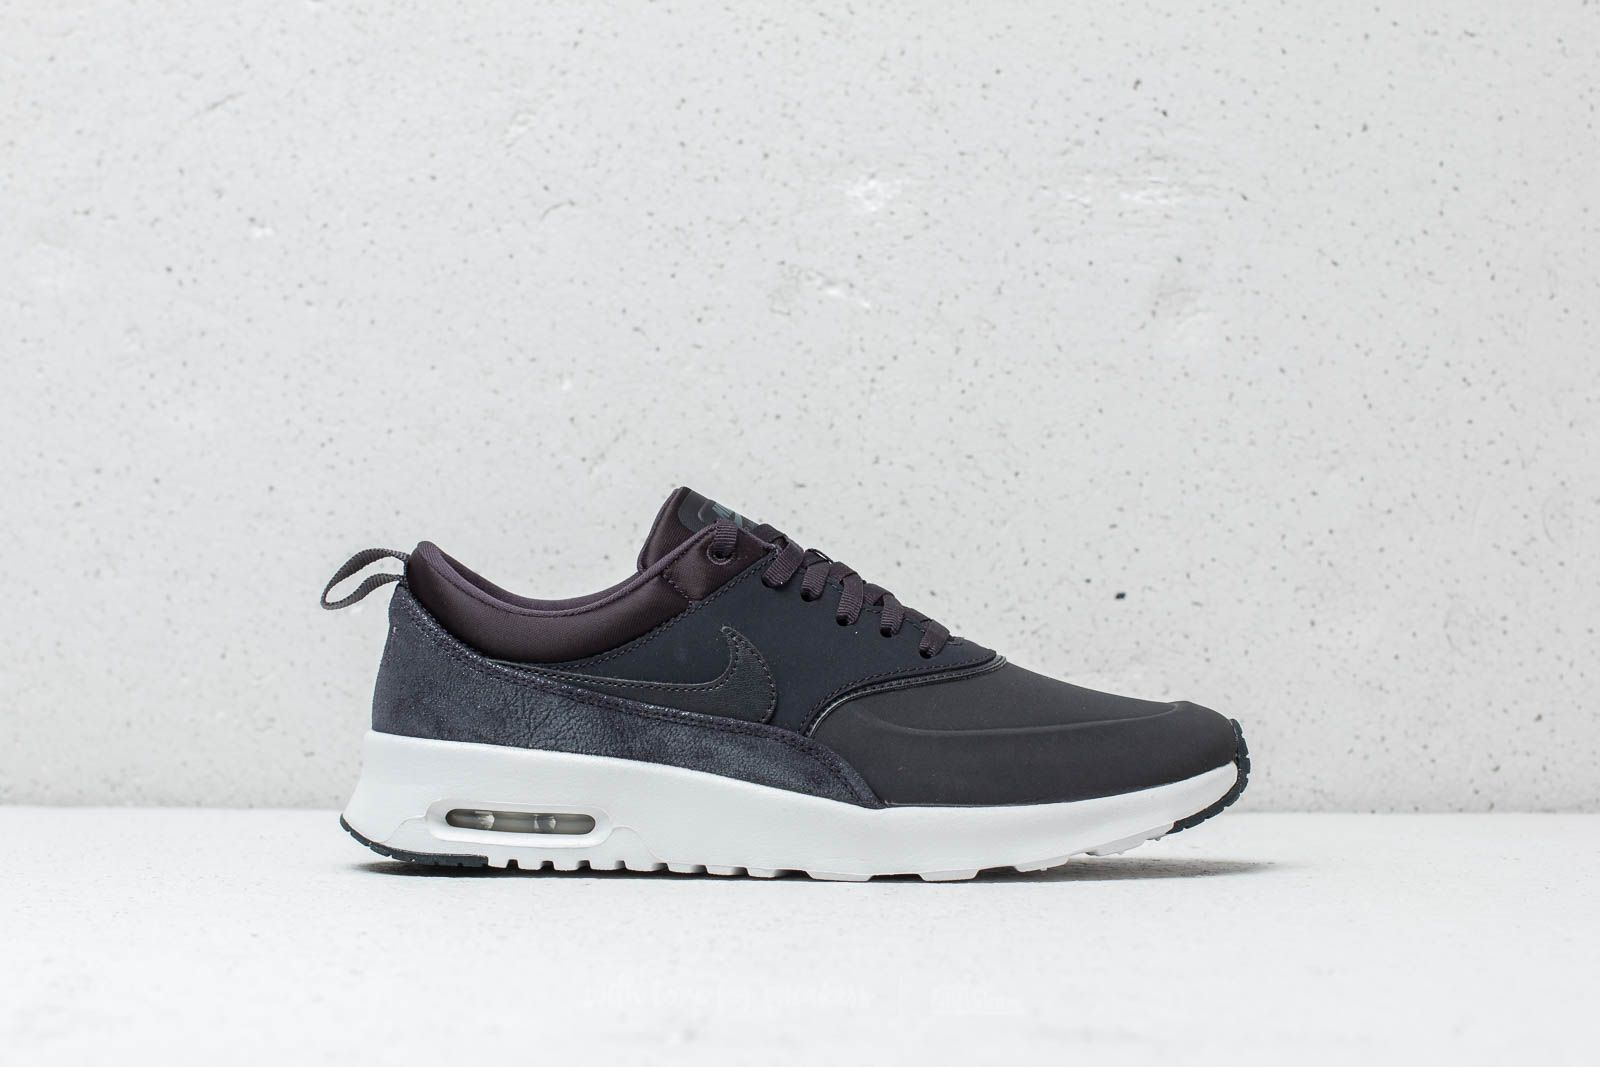 outlet store 67b5d 3fae9 Nike Air Max Thea Premium Wmns Oil Grey  Oil Grey-Summit White at a